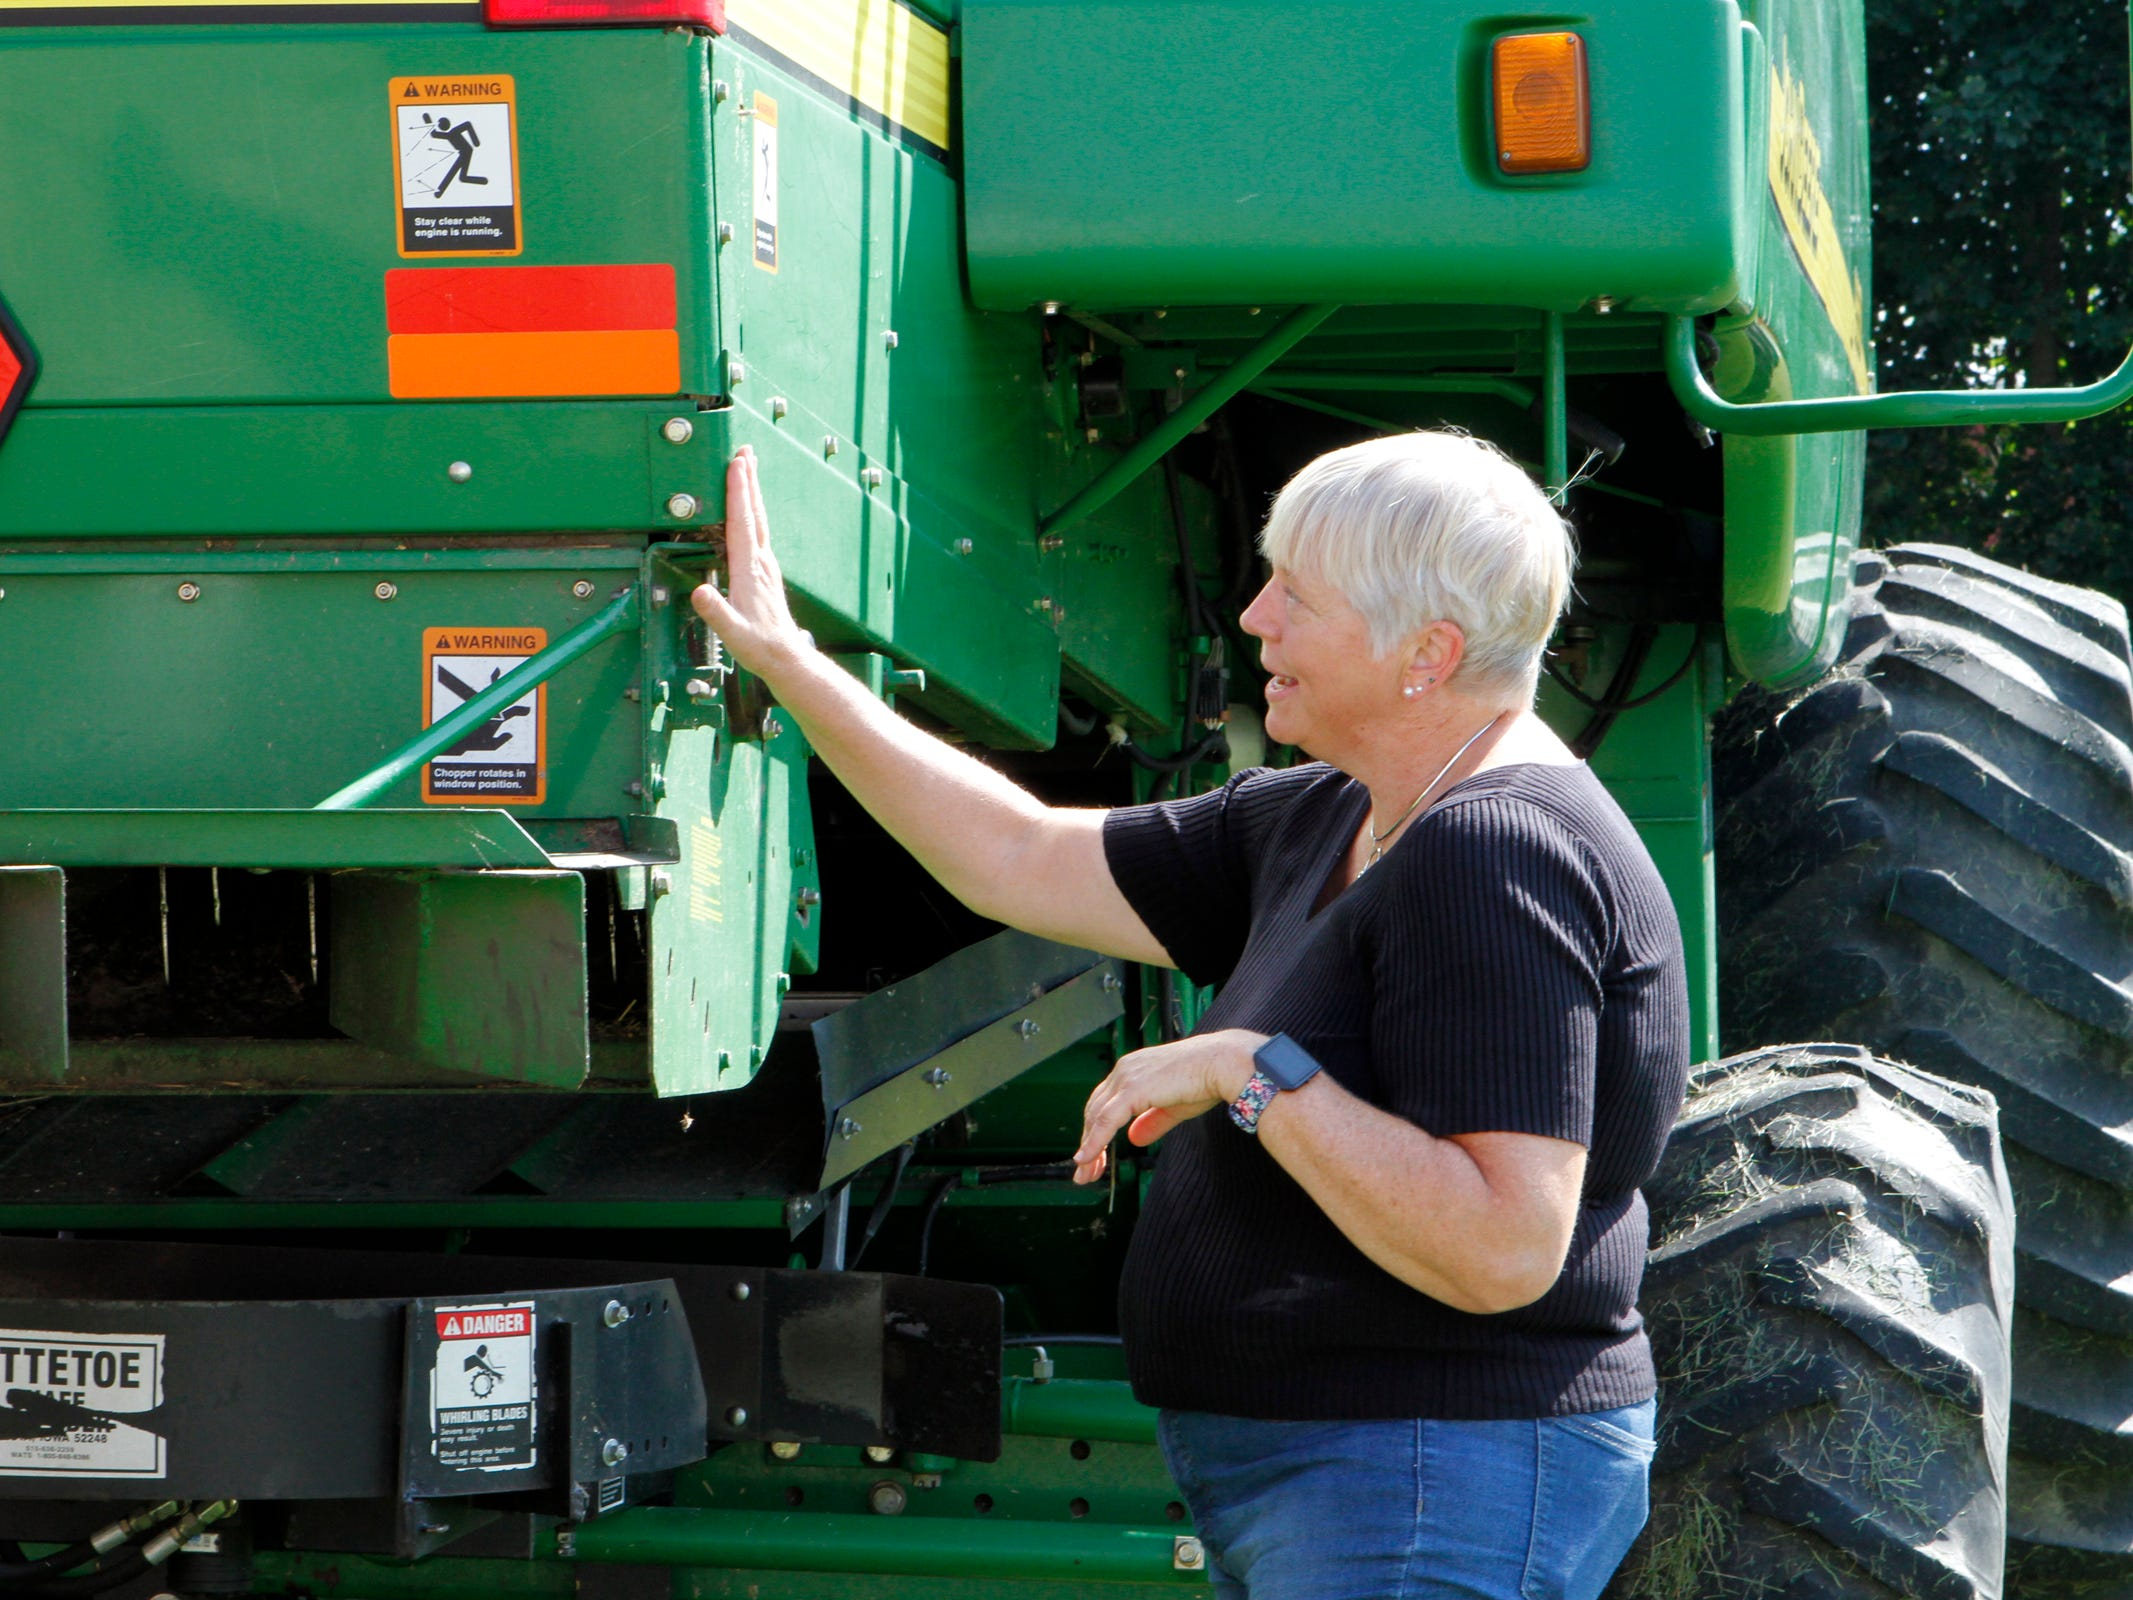 Cheryl Skjolaas, UW-Extension agriculture safety specialist, talks about proper marking of equipment during a road safety demonstration on Aug. 31.